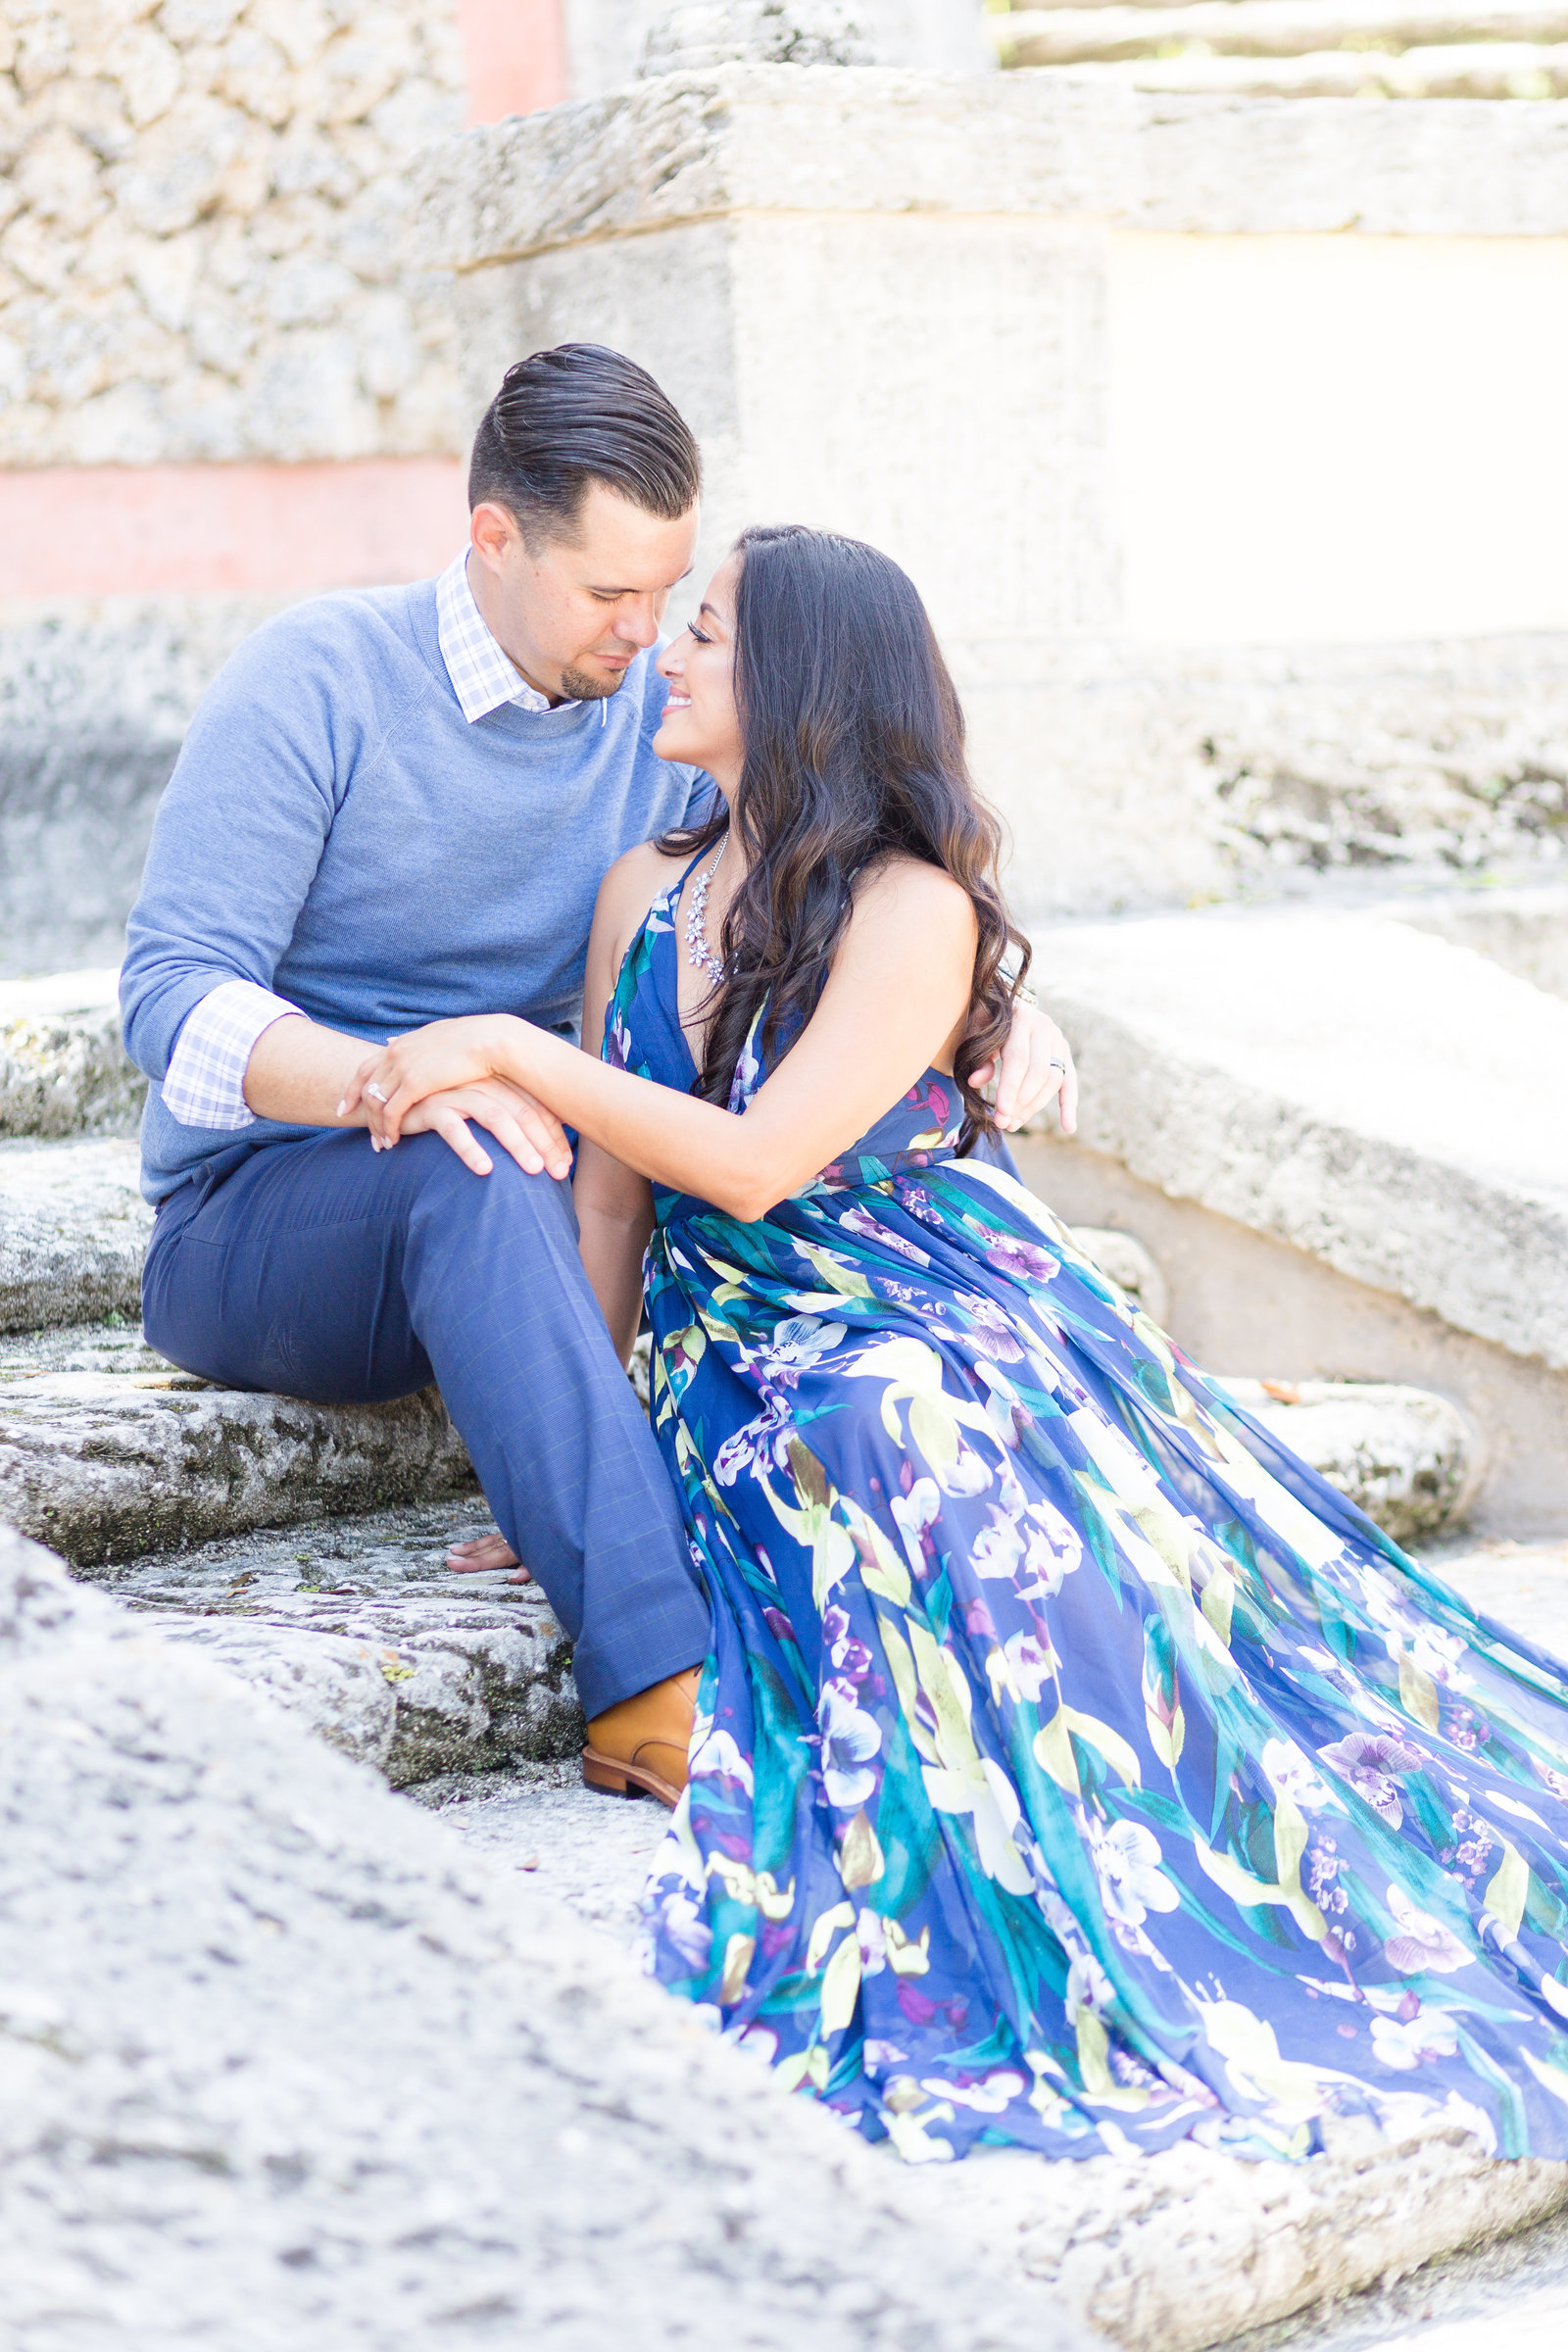 Vizcaya-Miami-Florida-Engagement-chris-and-micaela-Photography-2